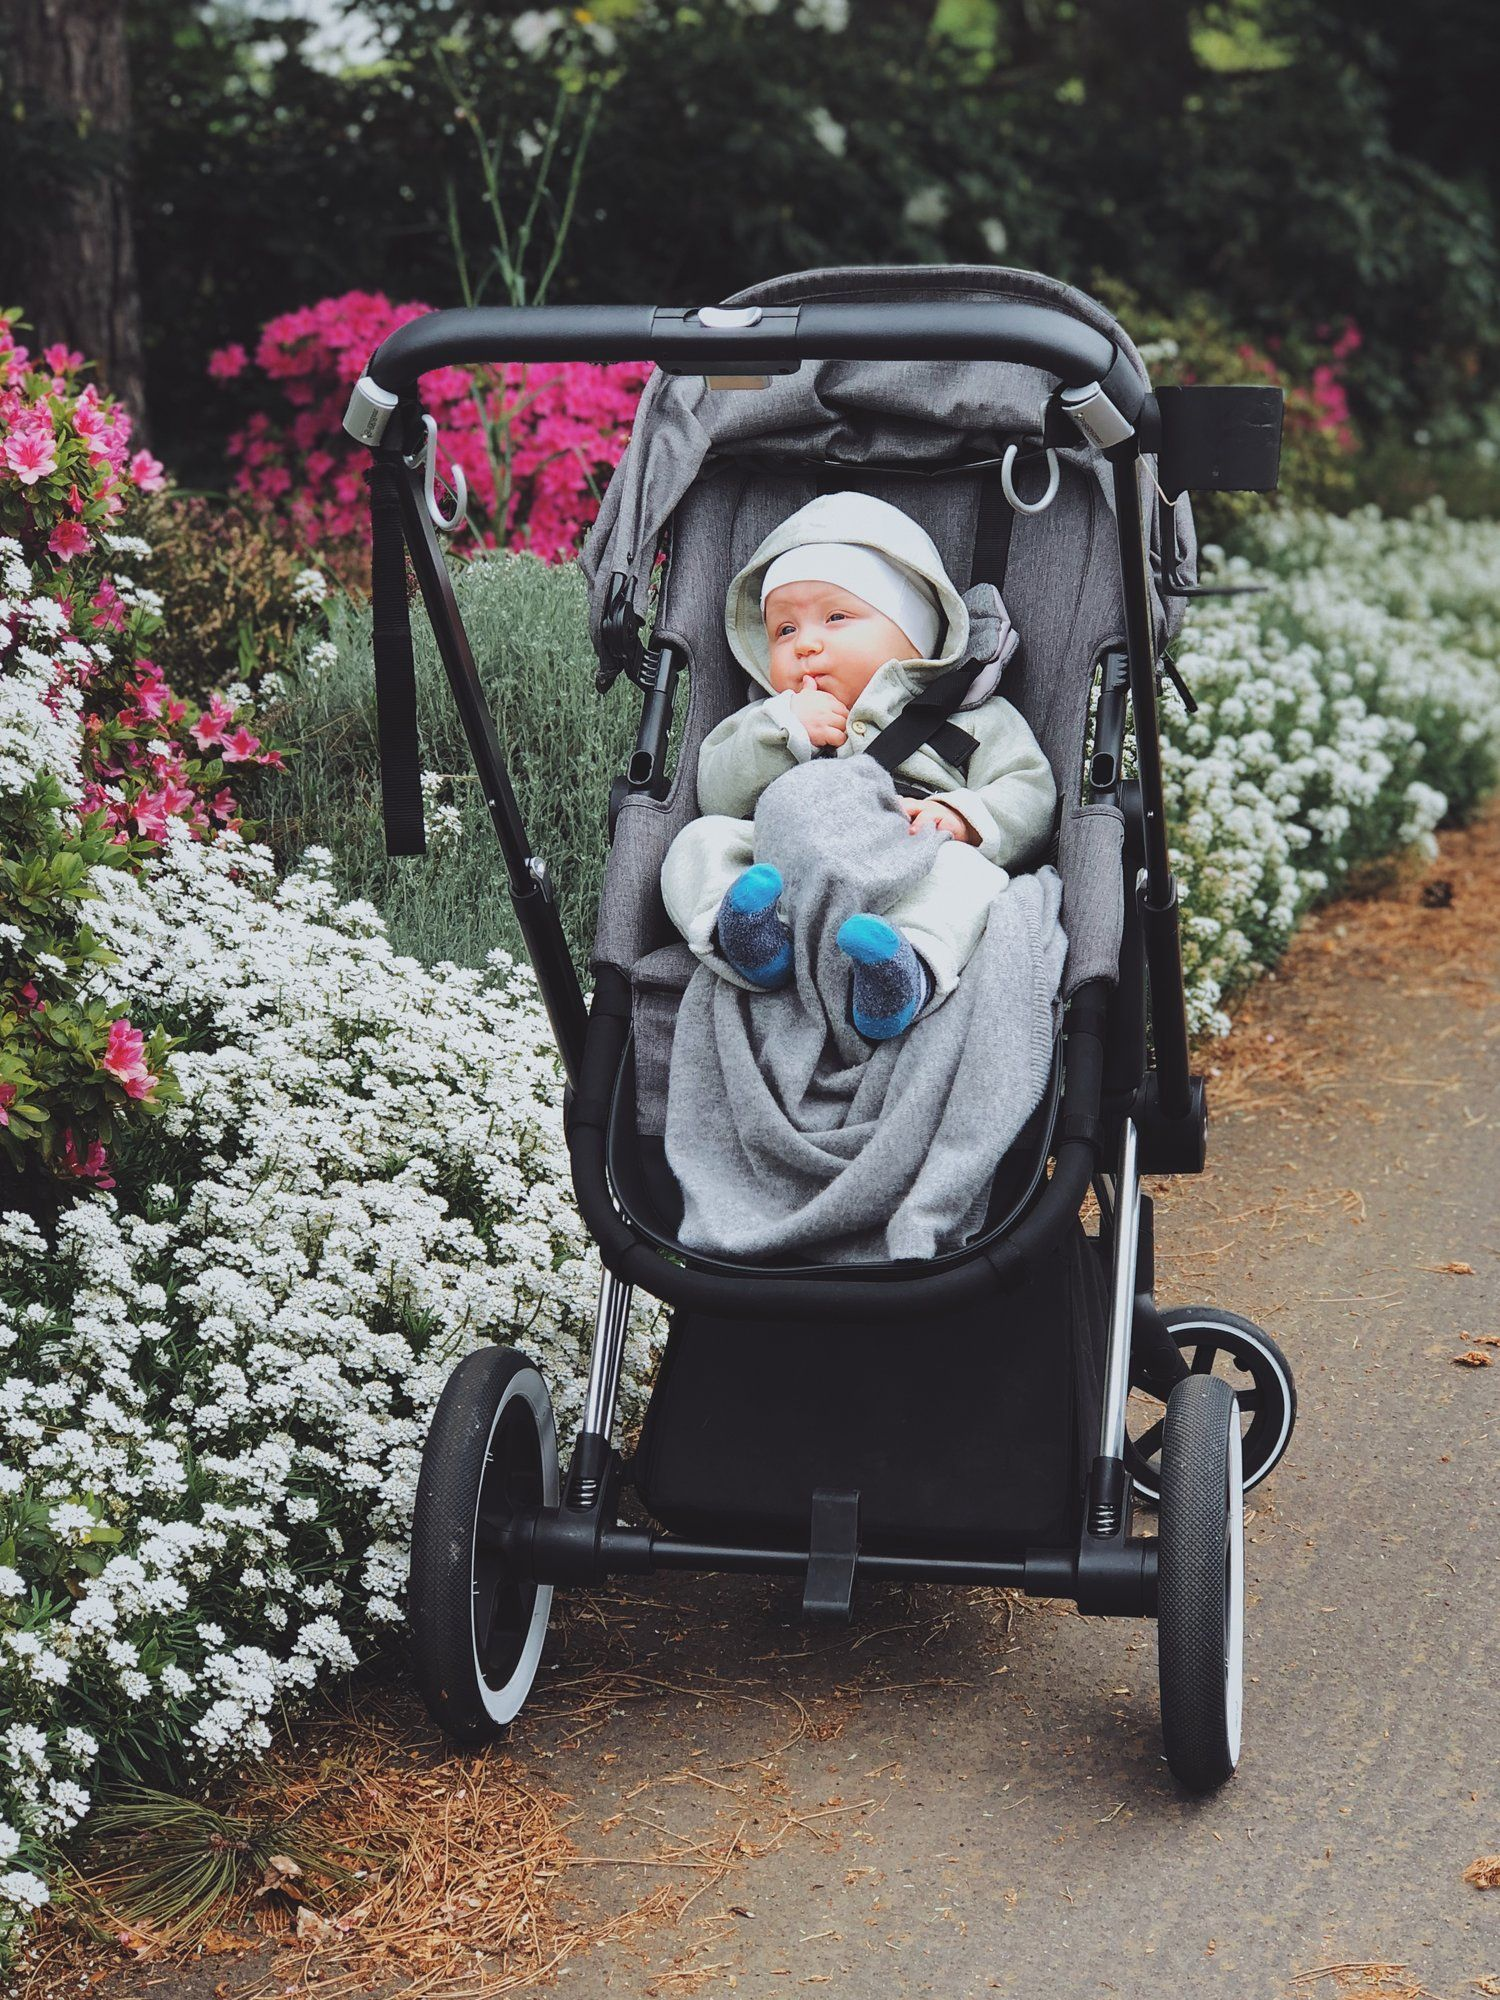 Buggy Board Moon Nuova Cybex Priam With The Buggygear Stroller Hooks First Baby